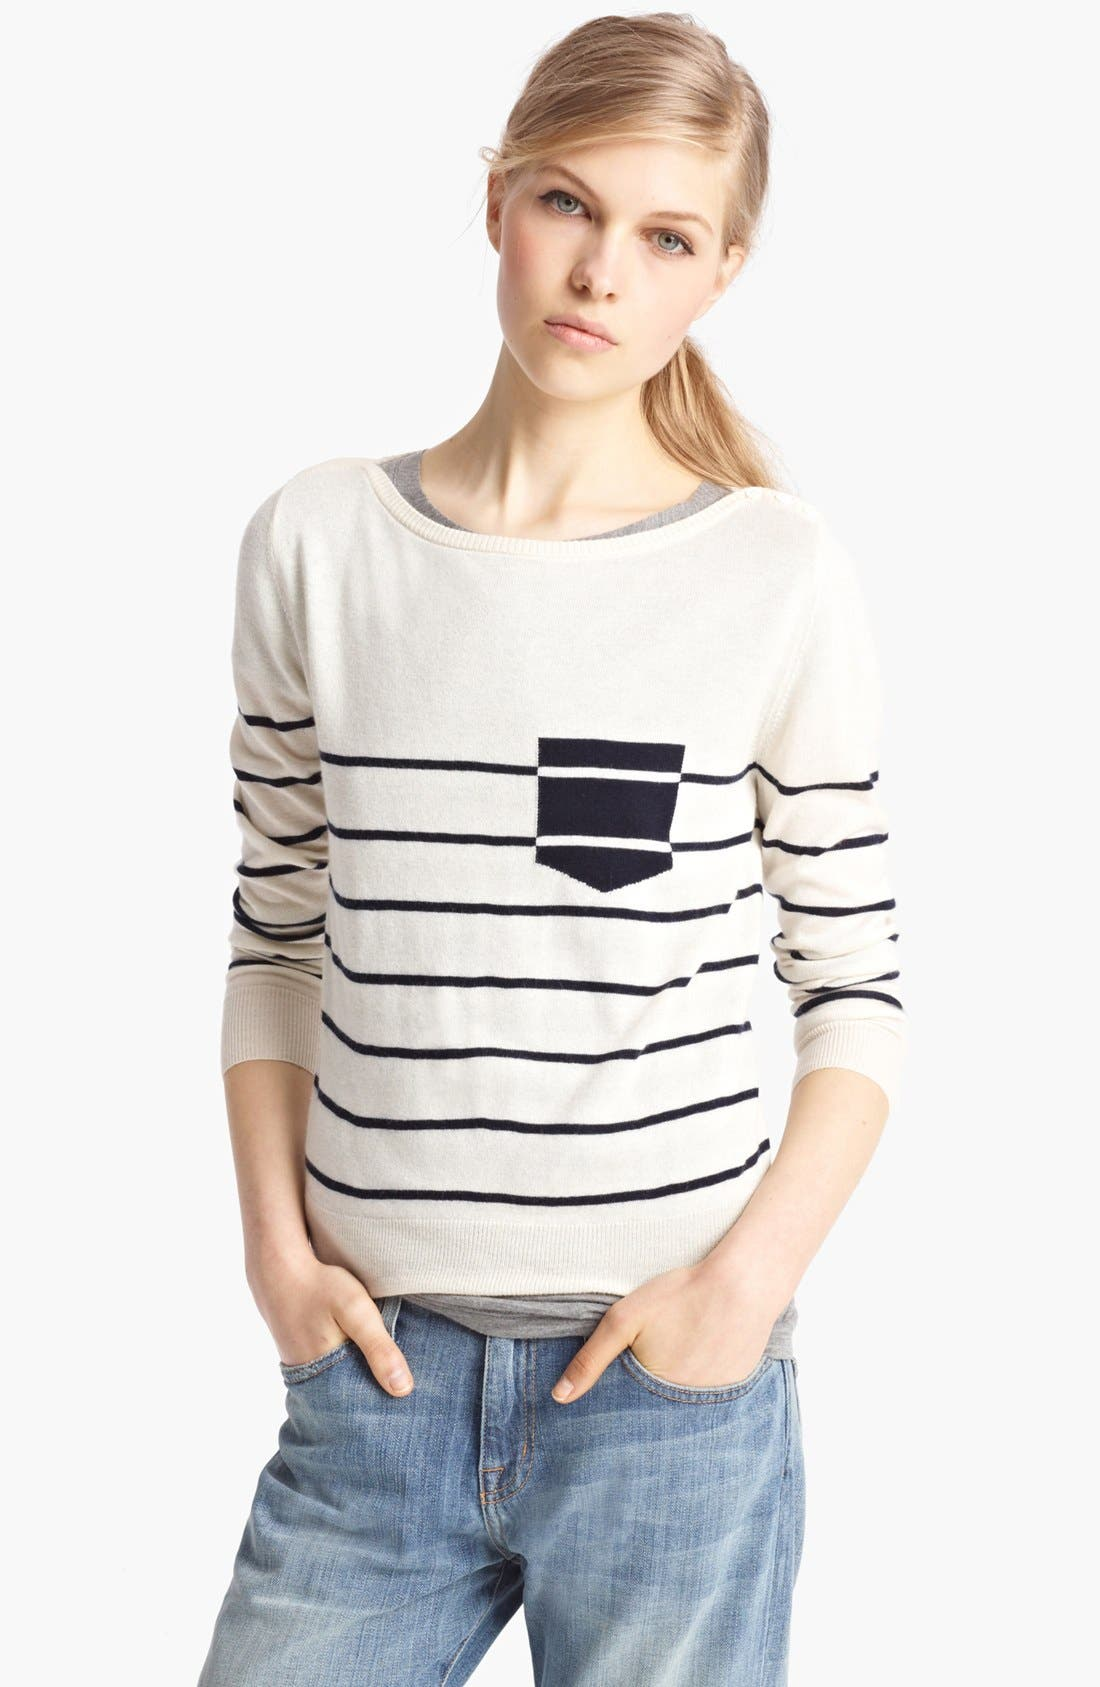 Alternate Image 1 Selected - Band of Outsiders Contrast Pocket Sweater